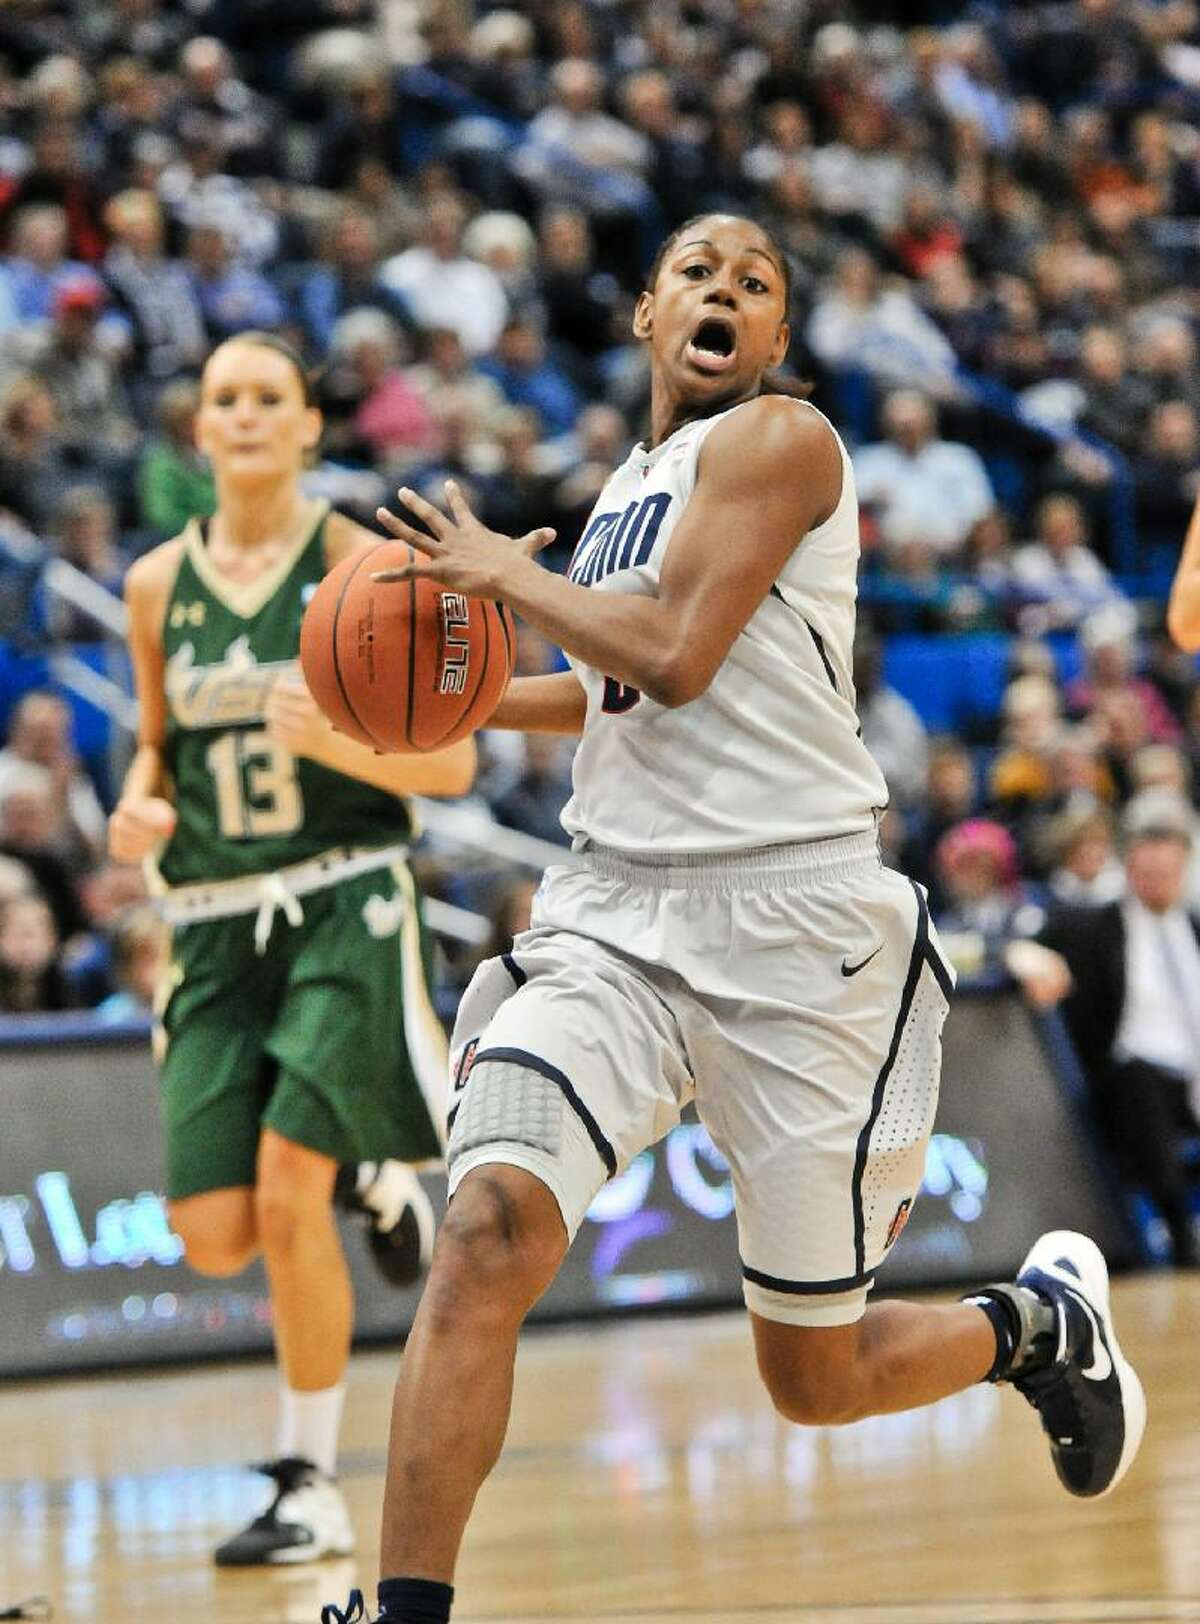 ASSOCIATED PRESS Connecticut's Tiffany Hayes drives to the basket during a Jan. 28 game against South Florida at the XL Center in Hartford. The Huskies face Rutgers tonight at 7.